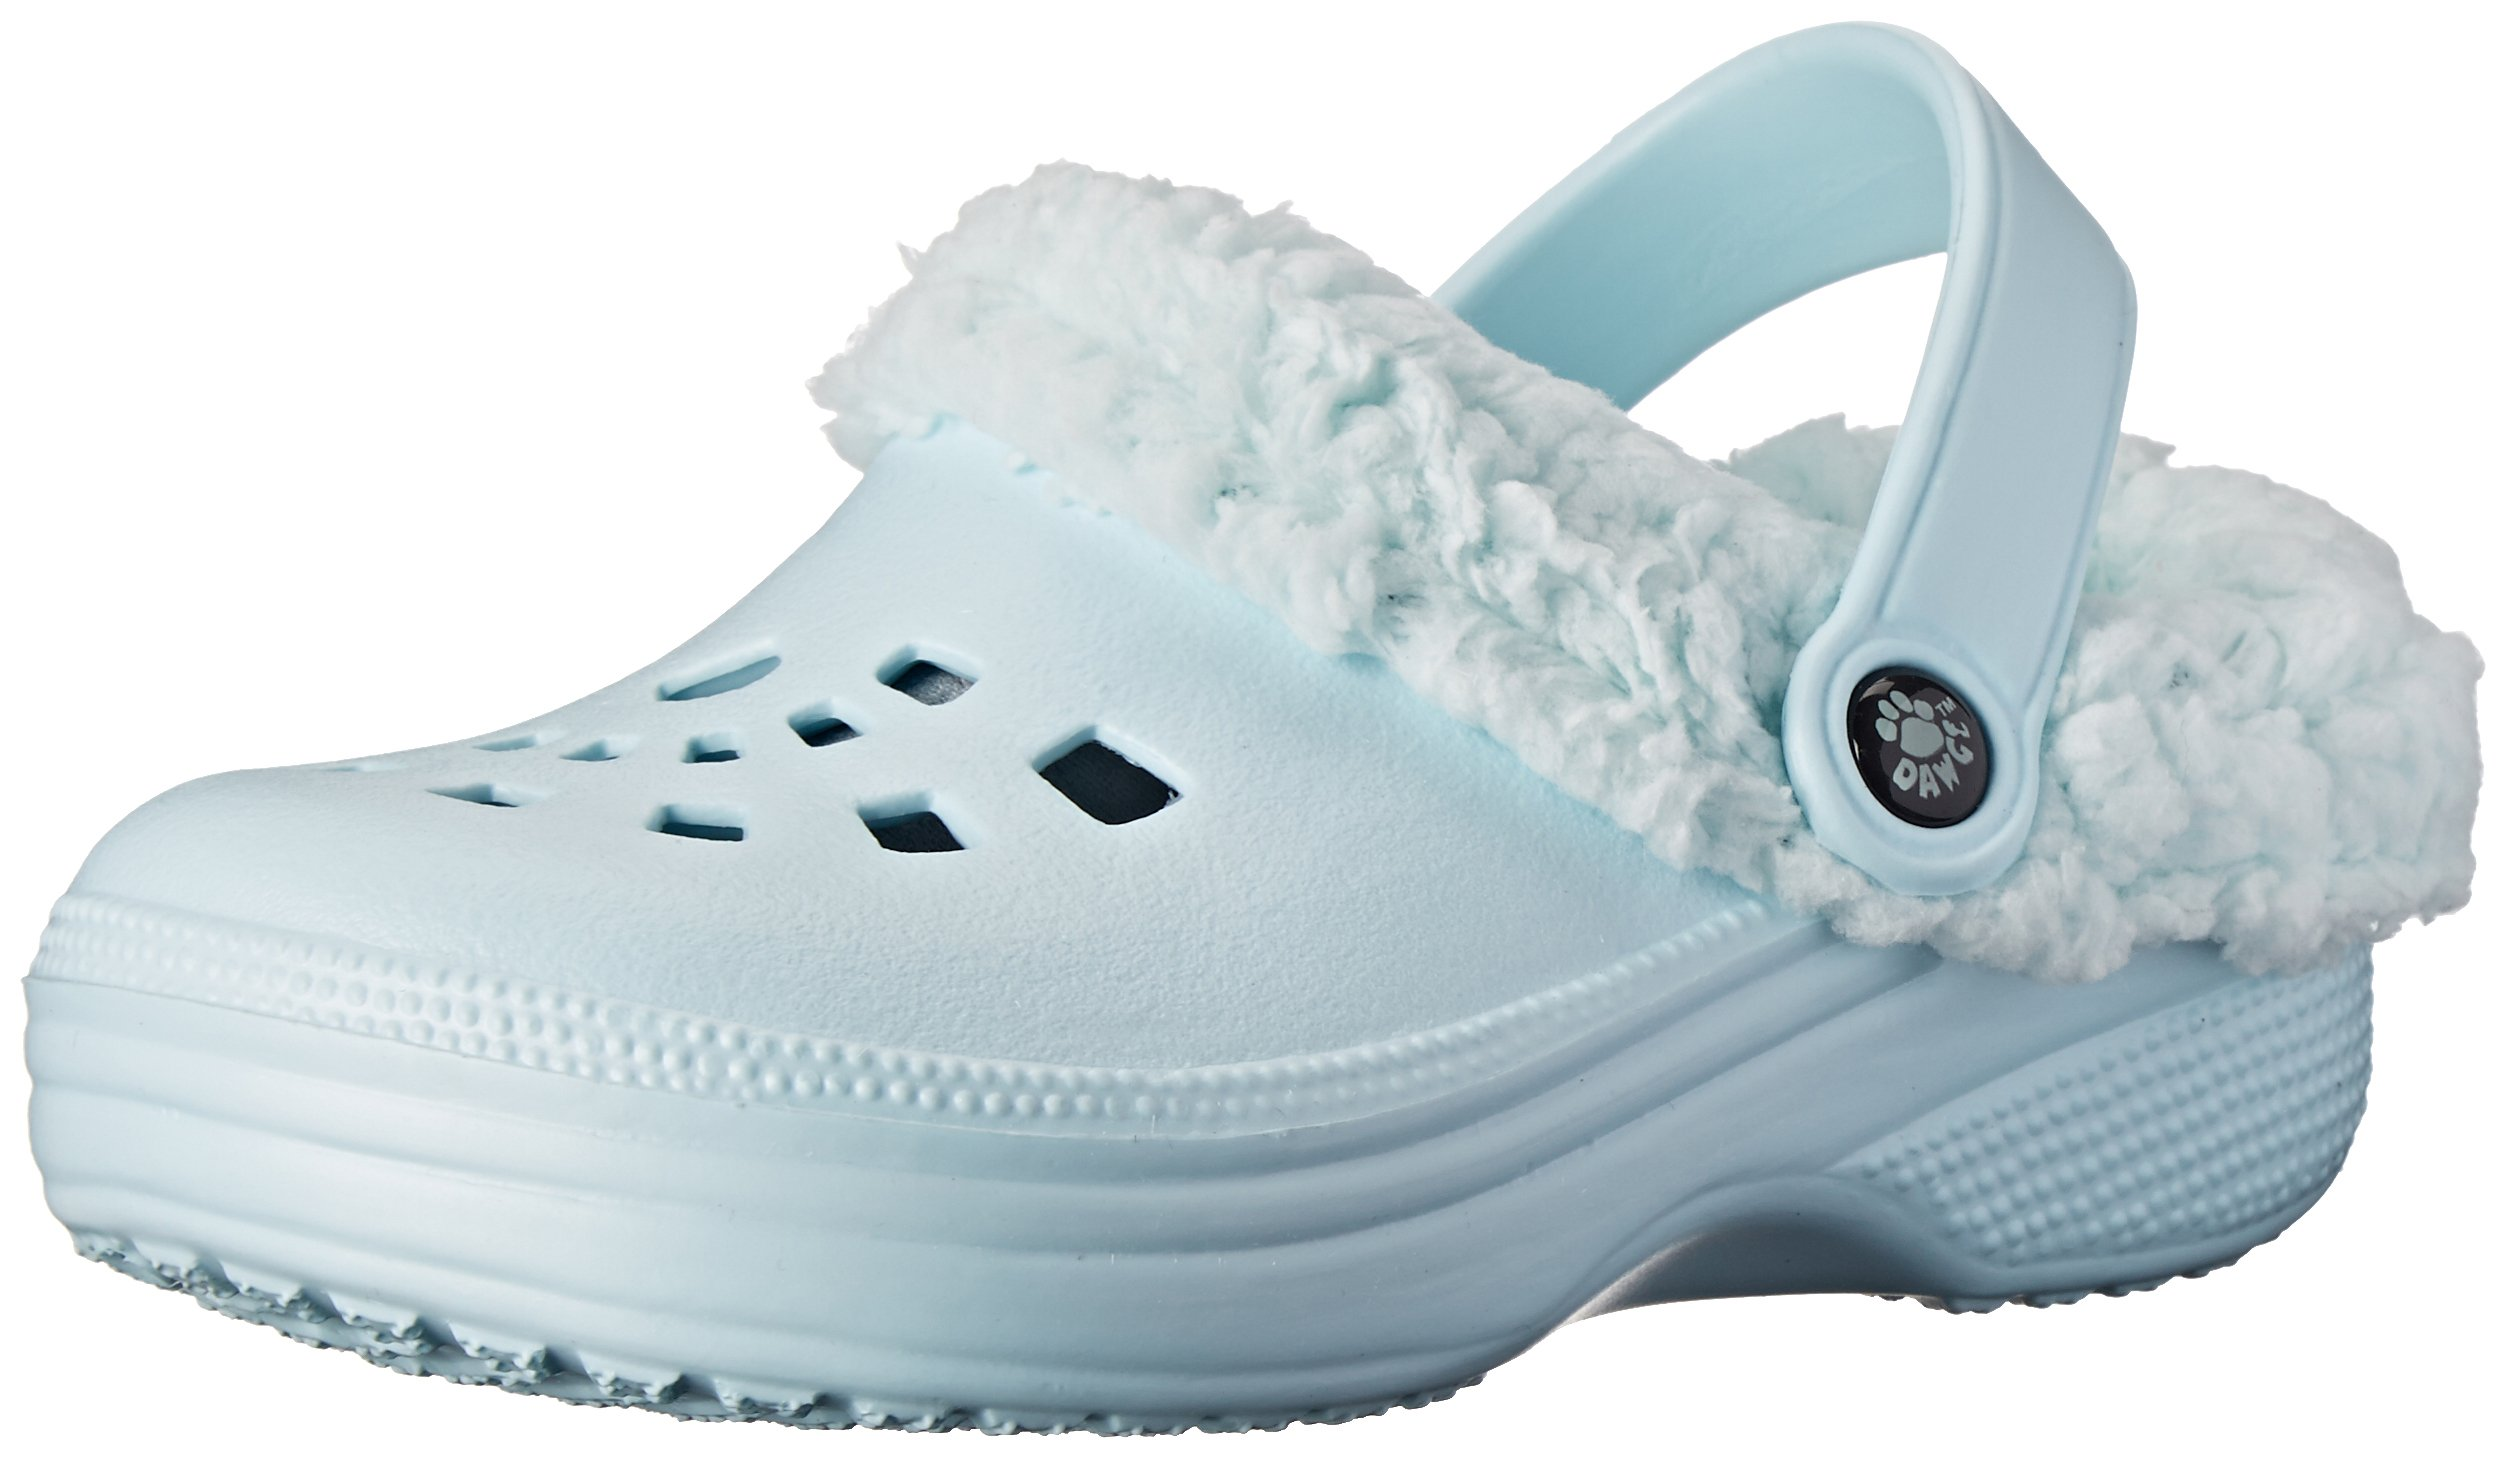 DAWGS Fleecedawgs Clog (Toddler/Little Kid), Baby Blue/Baby Blue, 8 M US Toddler